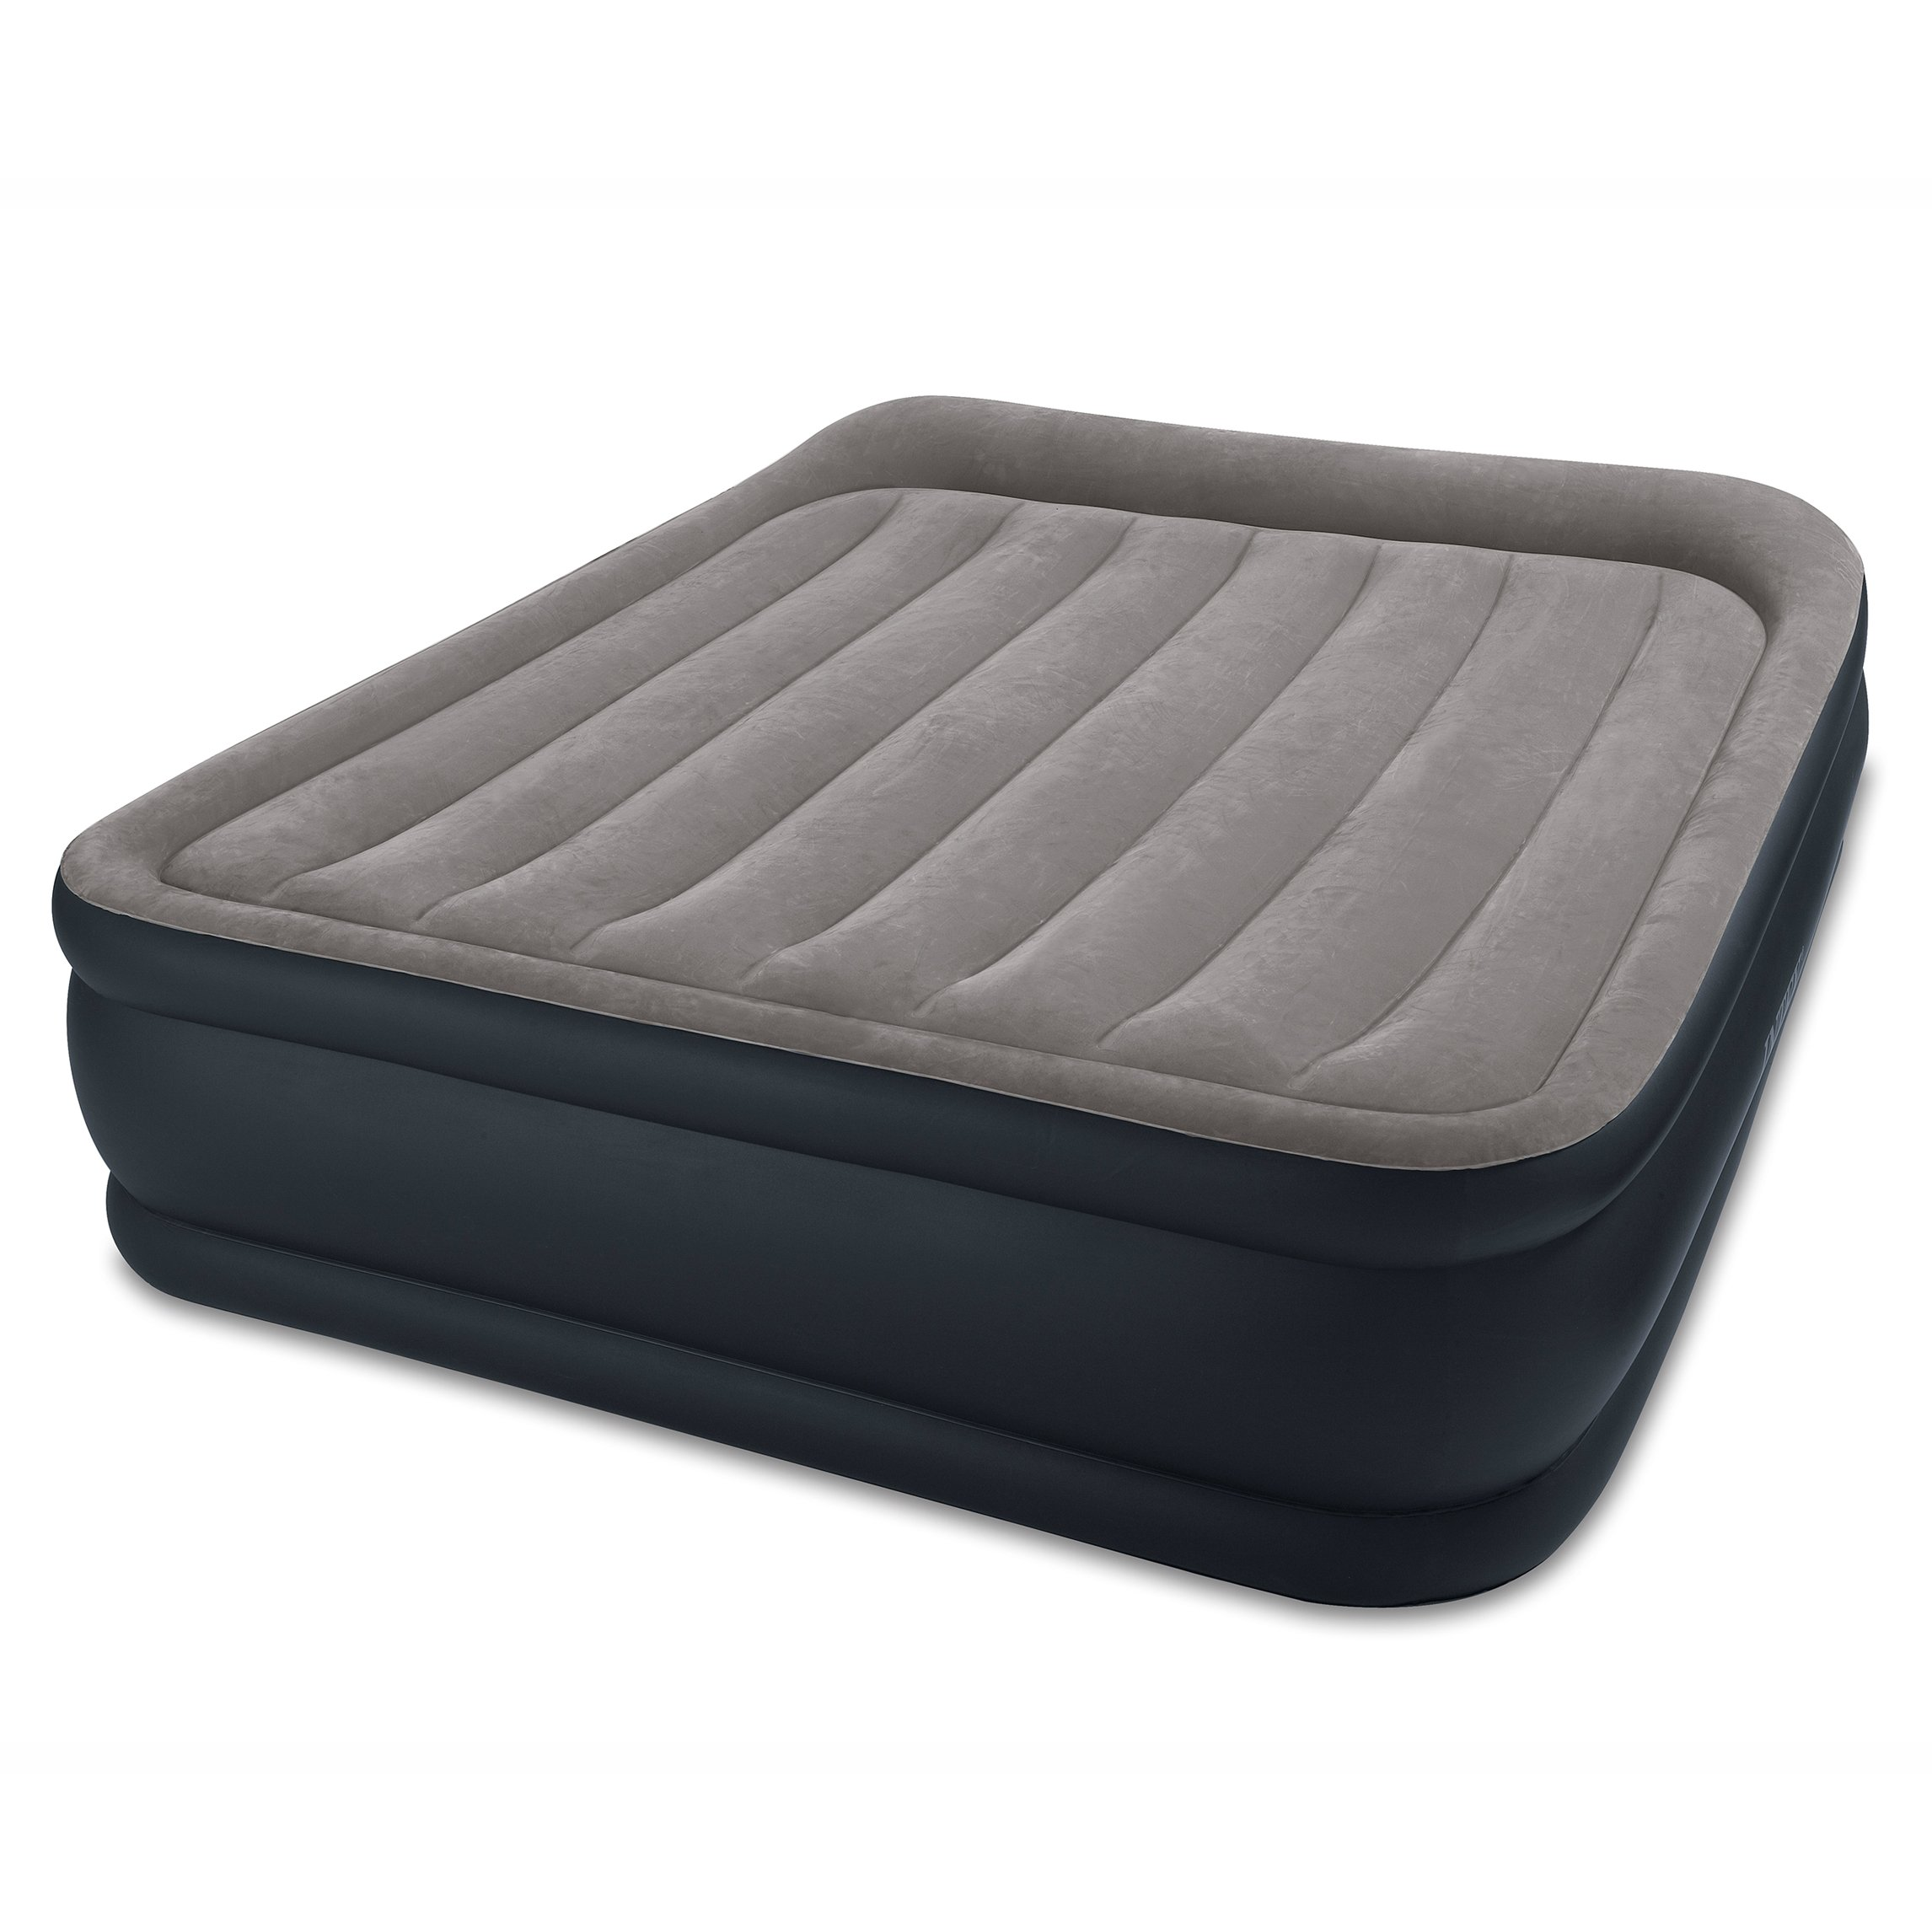 "Intex Dura-Beam Standard Series Deluxe Pillow Rest Raised Airbed w/Soft Flocked Top for Comfort, Built-in Pillow & Electric Pump, Bed Height 16.5"", Queen"